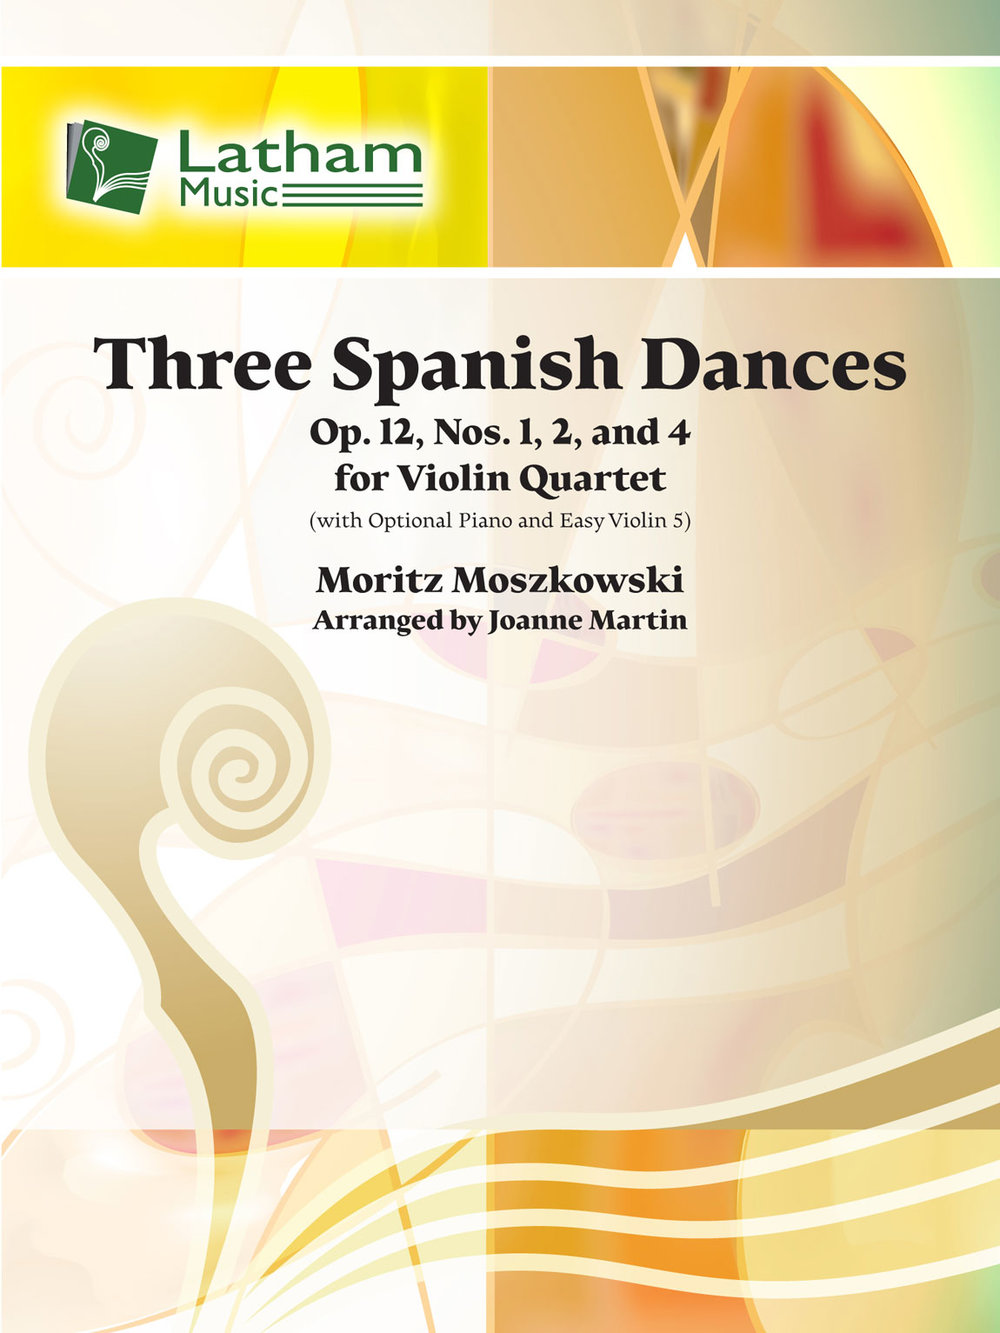 SpanishDanceViolin.jpg